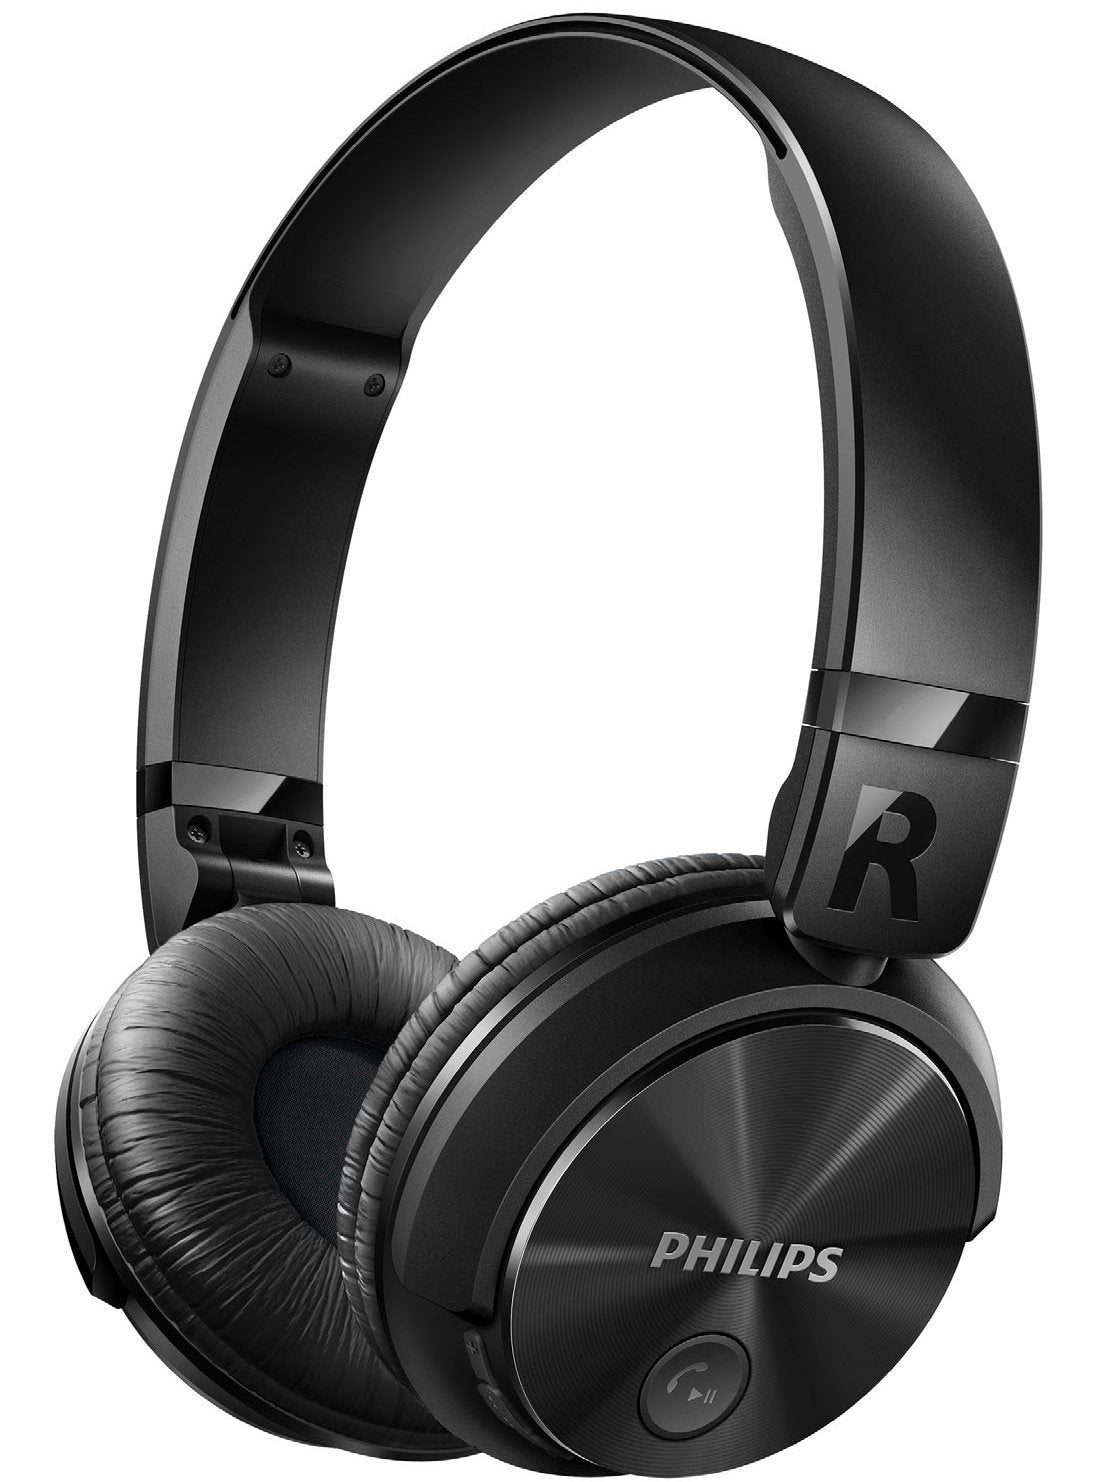 Philips SHB3060 Bluetooth Headphones (Black)